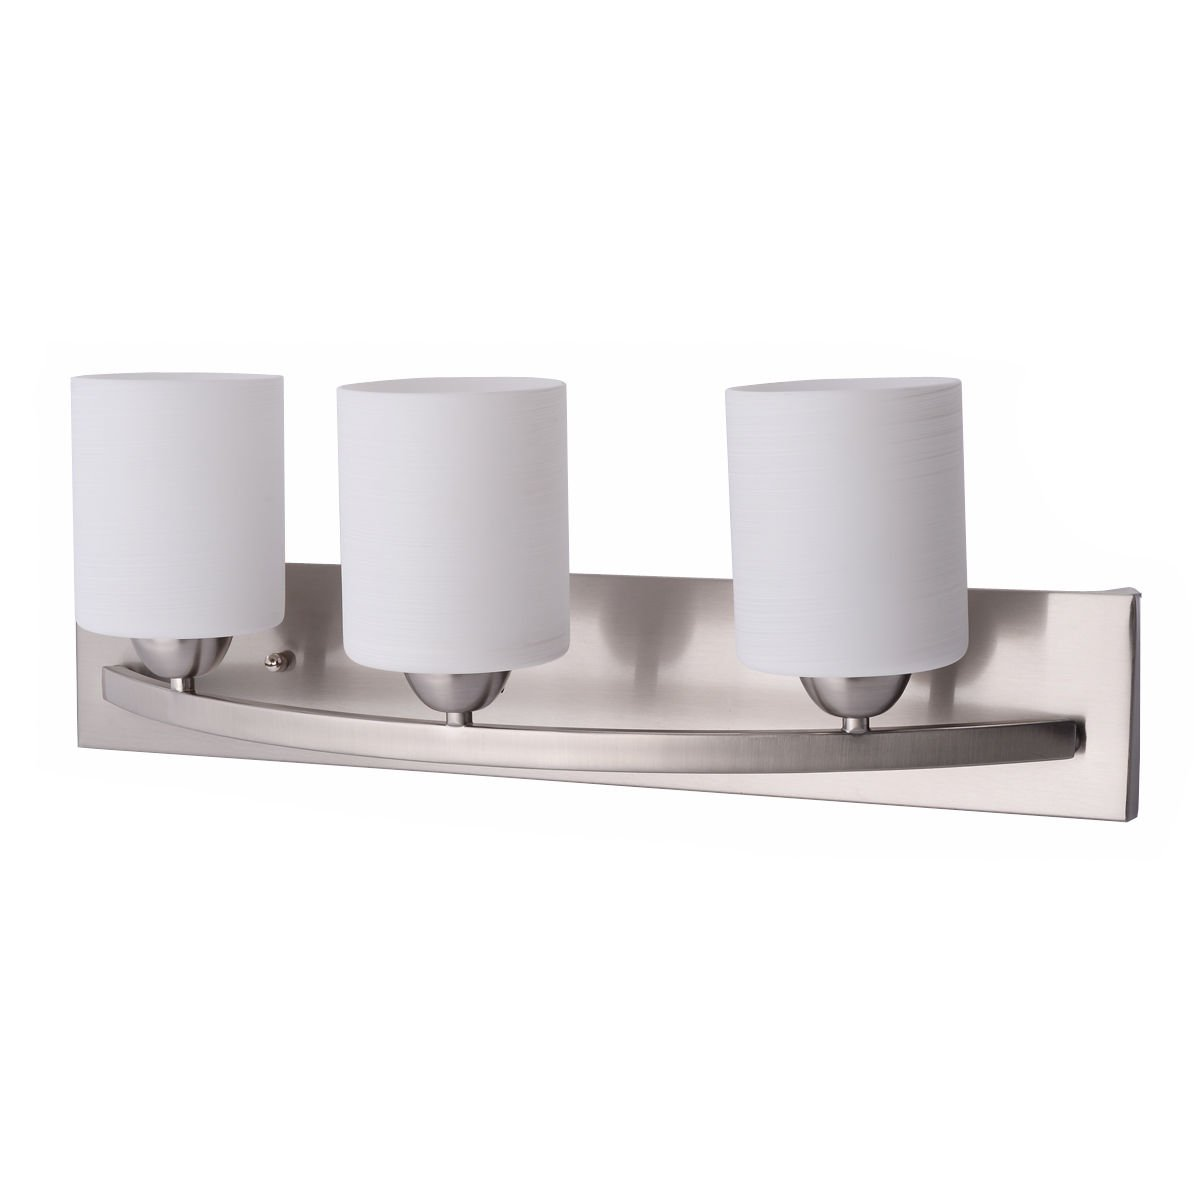 sconce product apparatus general en i from h vanity pair lighting architonic by